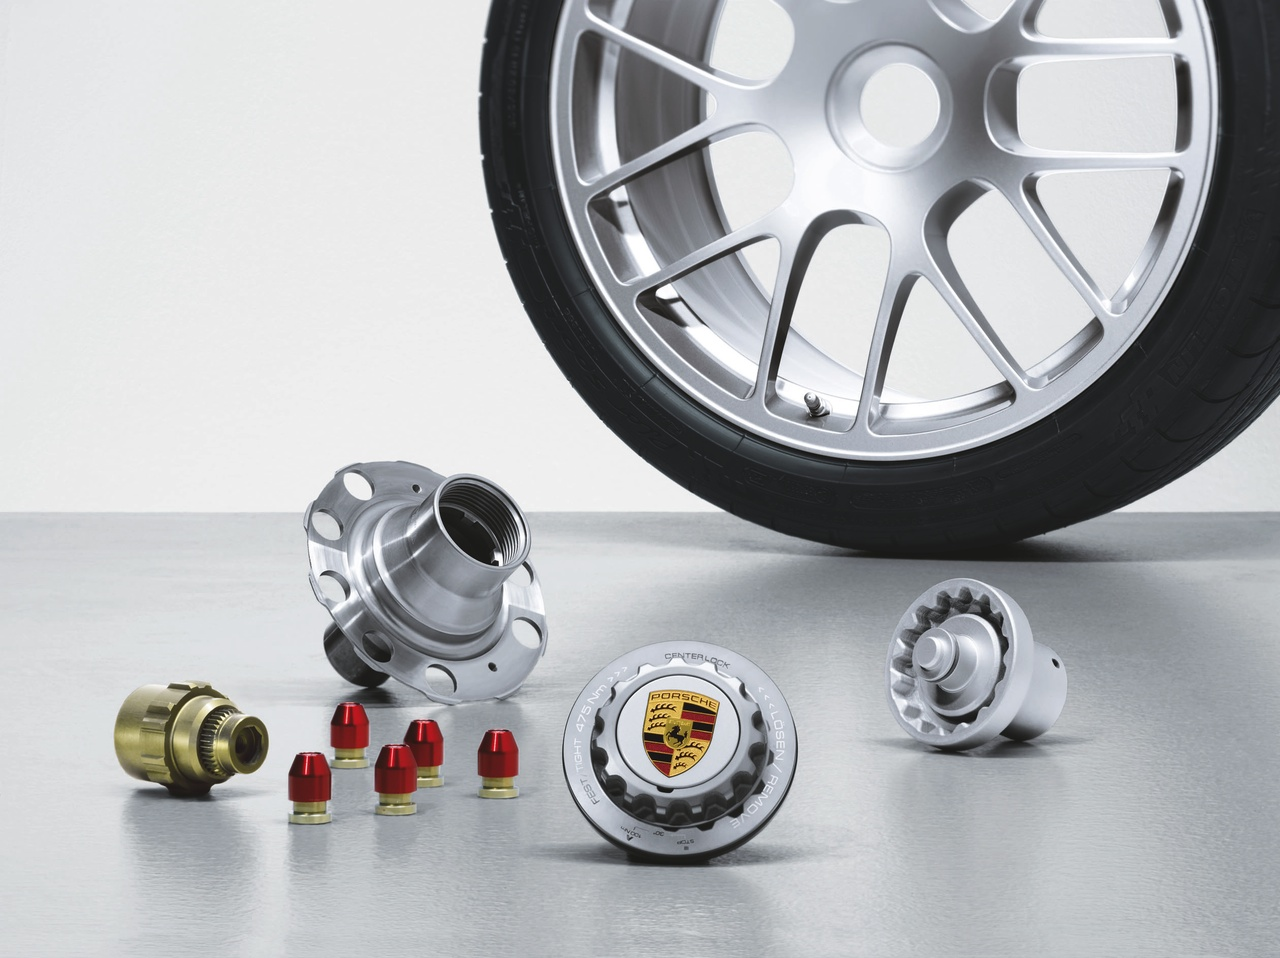 Porsche Gives Center Locking Wheels To The Masses